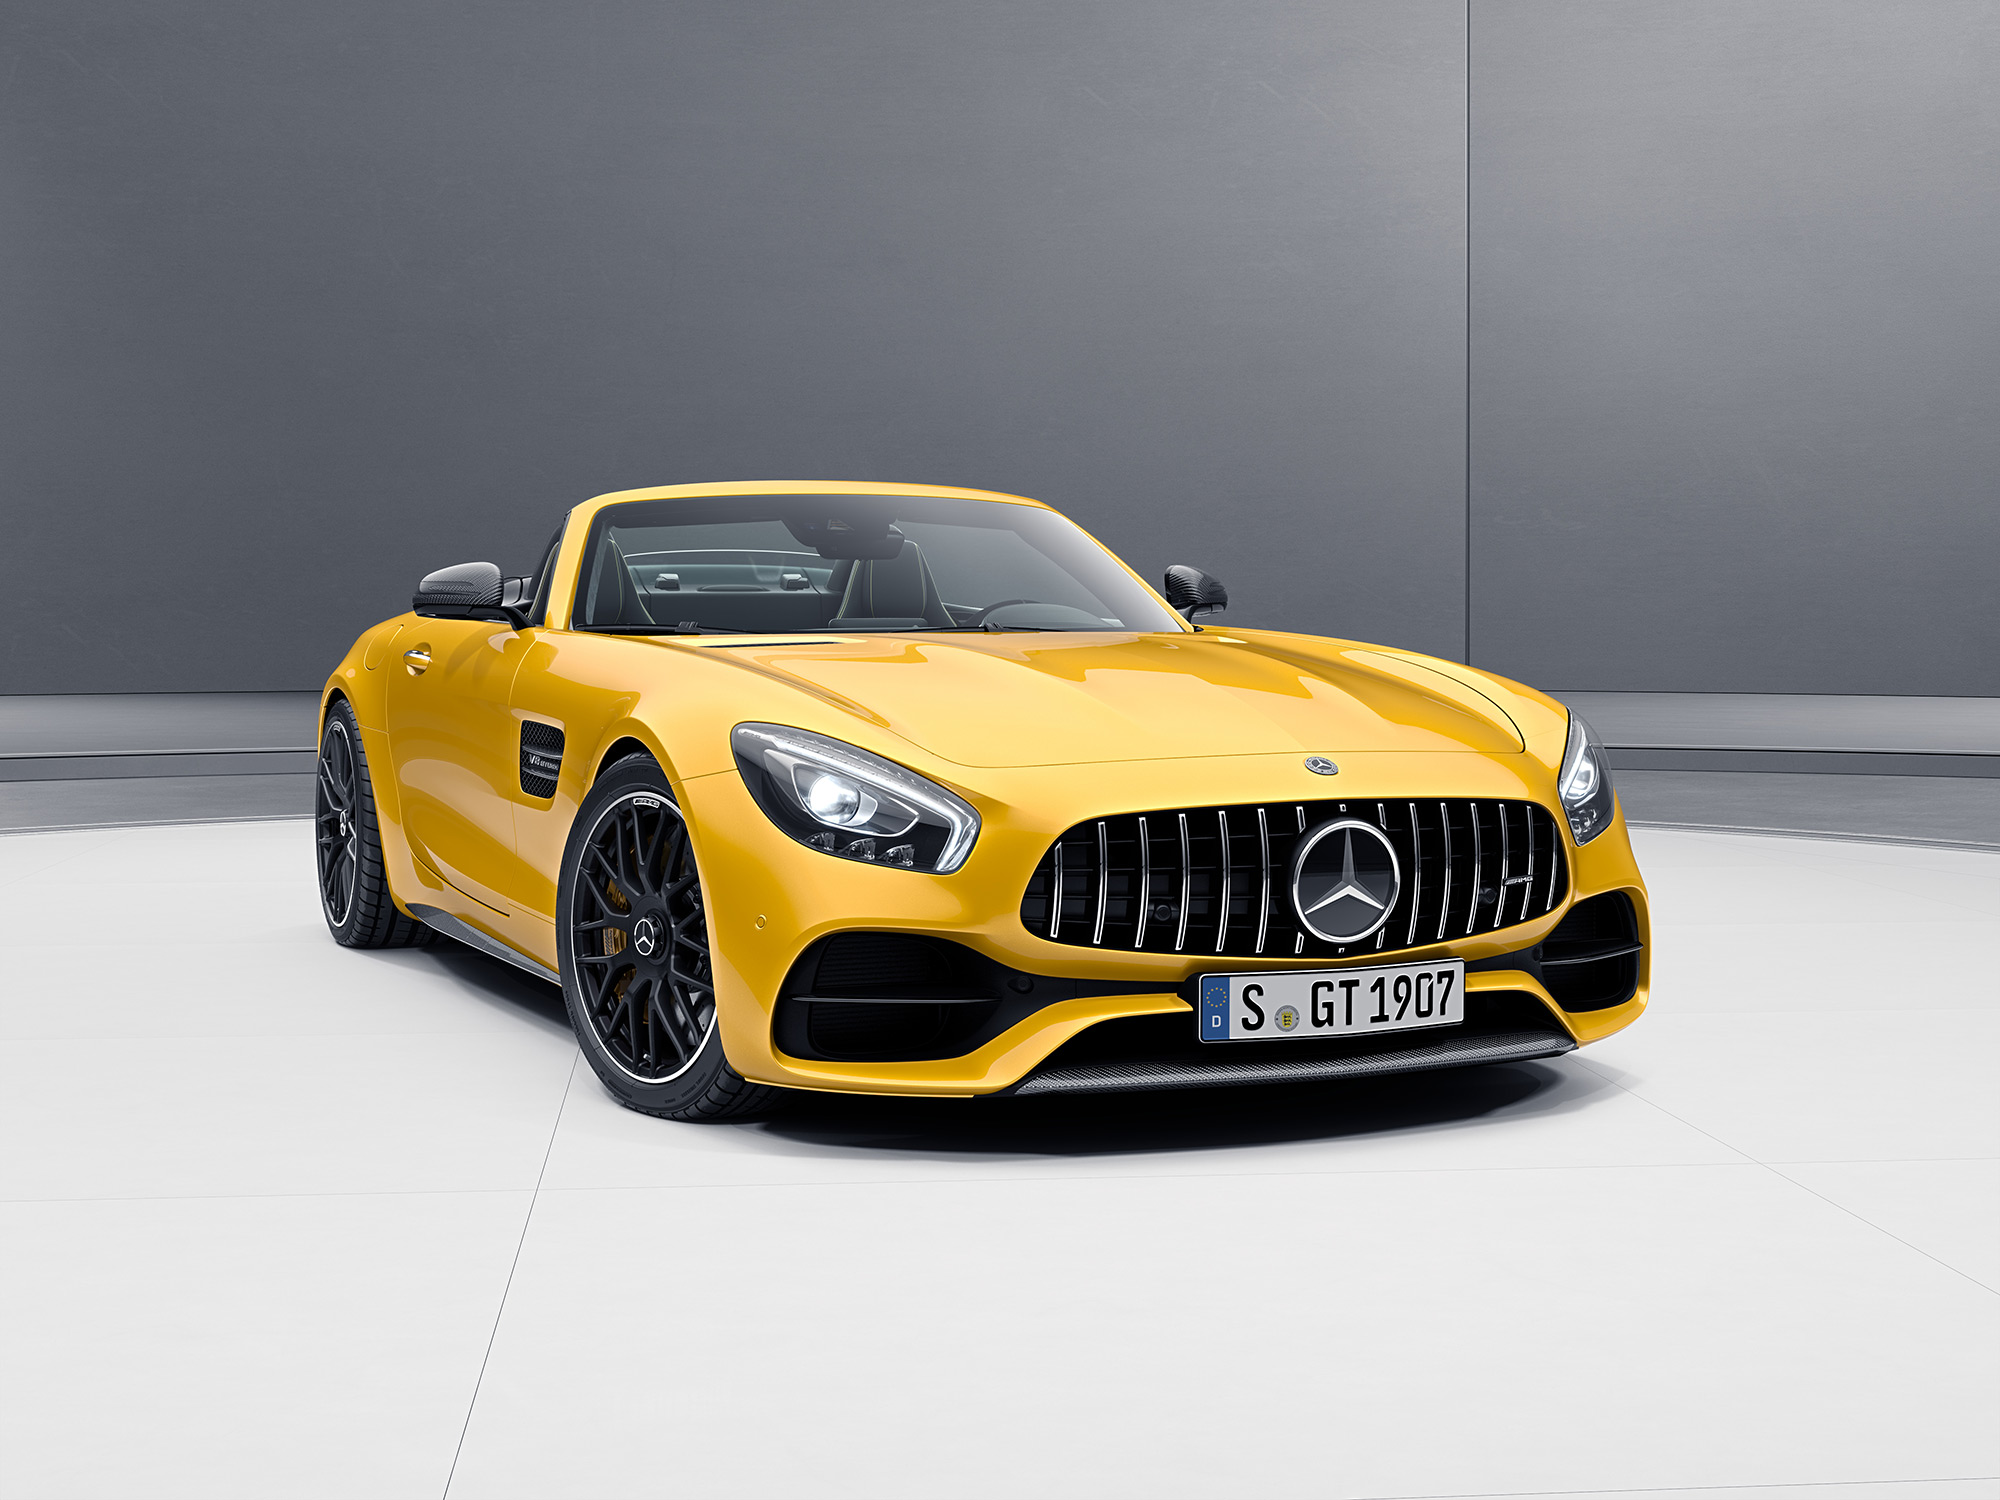 Mercedes benz amg gt roadster 2017 4 0l biturbo in bahrain for 2017 mercedes benz gts amg price